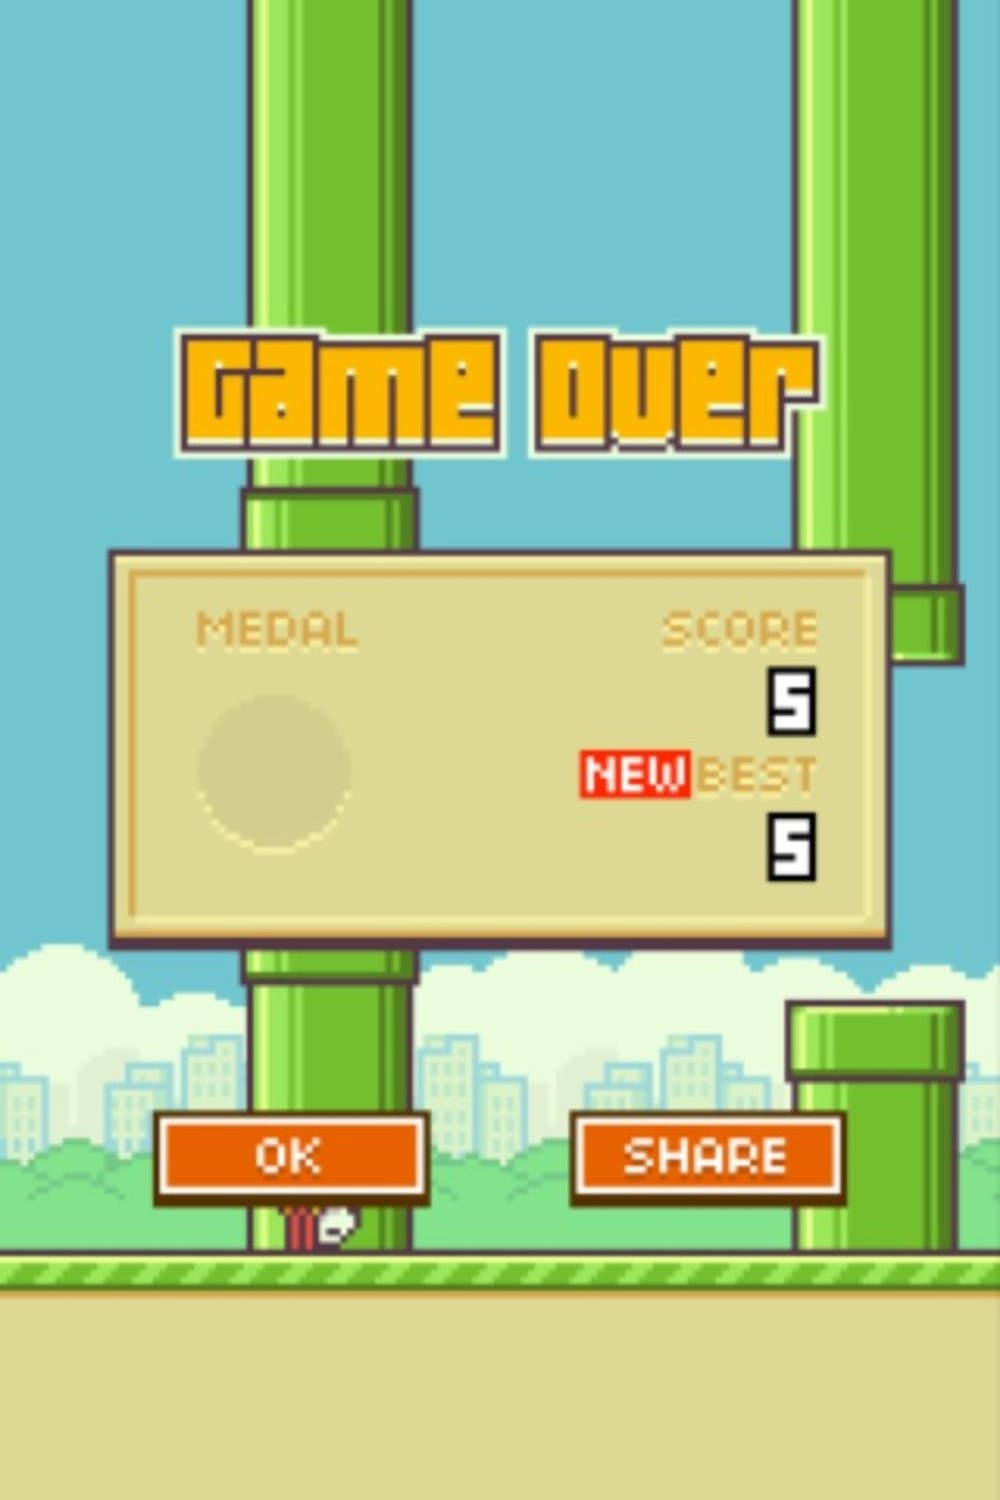 Fly no more: The story of Flappy Bird